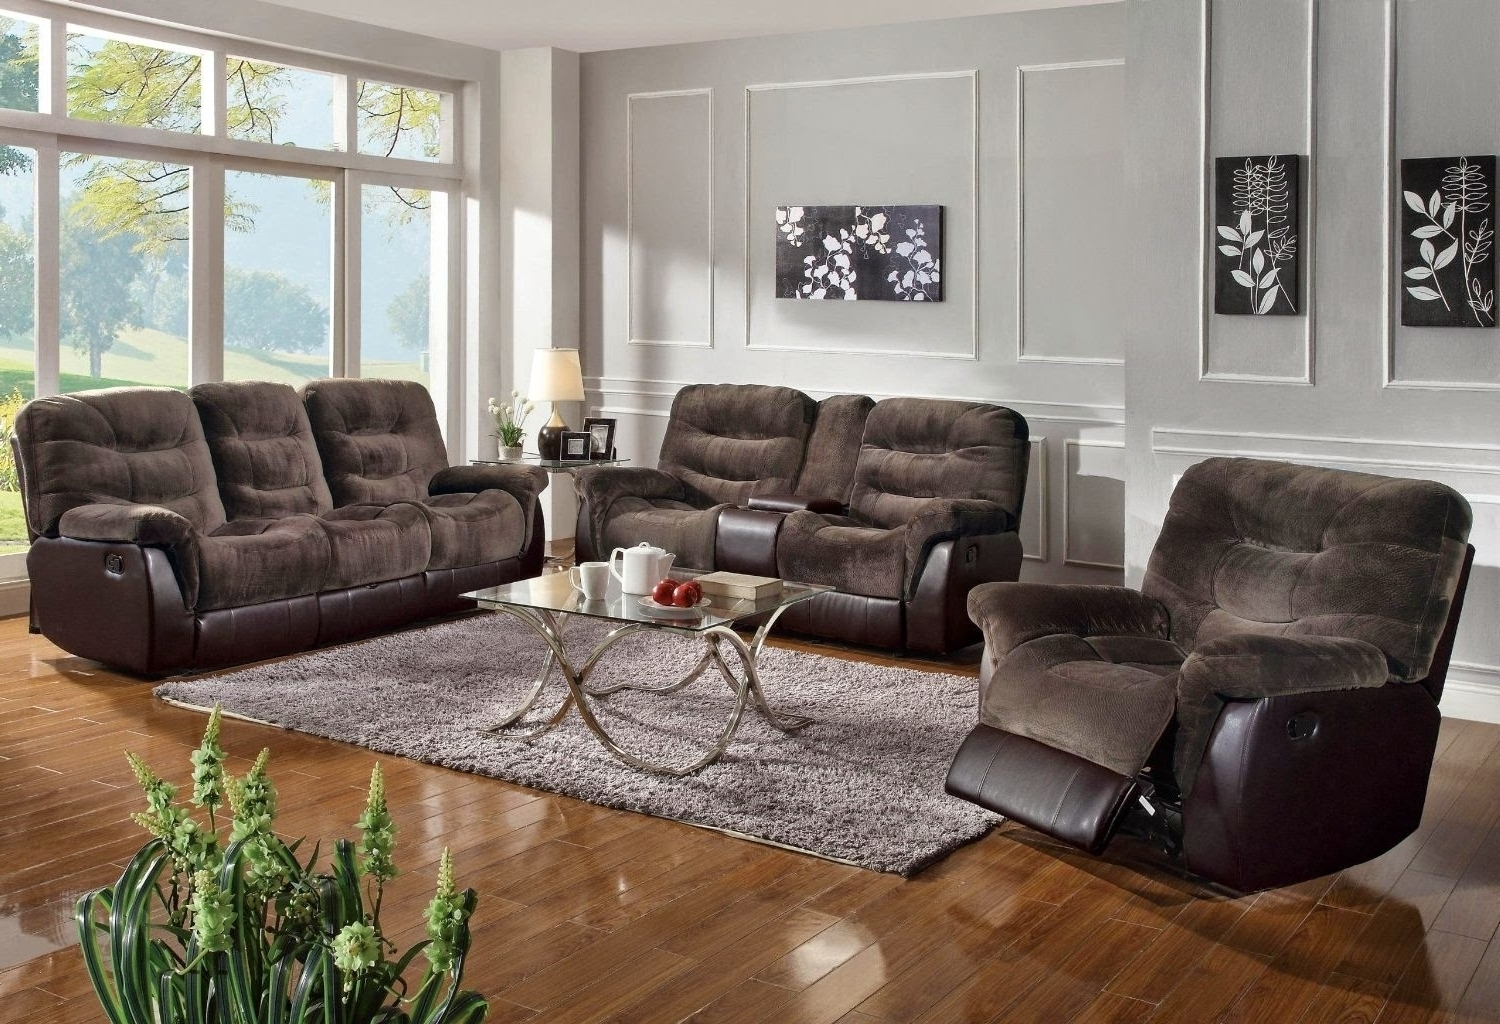 Famous Sectional Sofas For Small Spaces With Recliners With Regard To Furniture Reclining Sectional Sofas For Small Spaces Reclining (View 7 of 15)